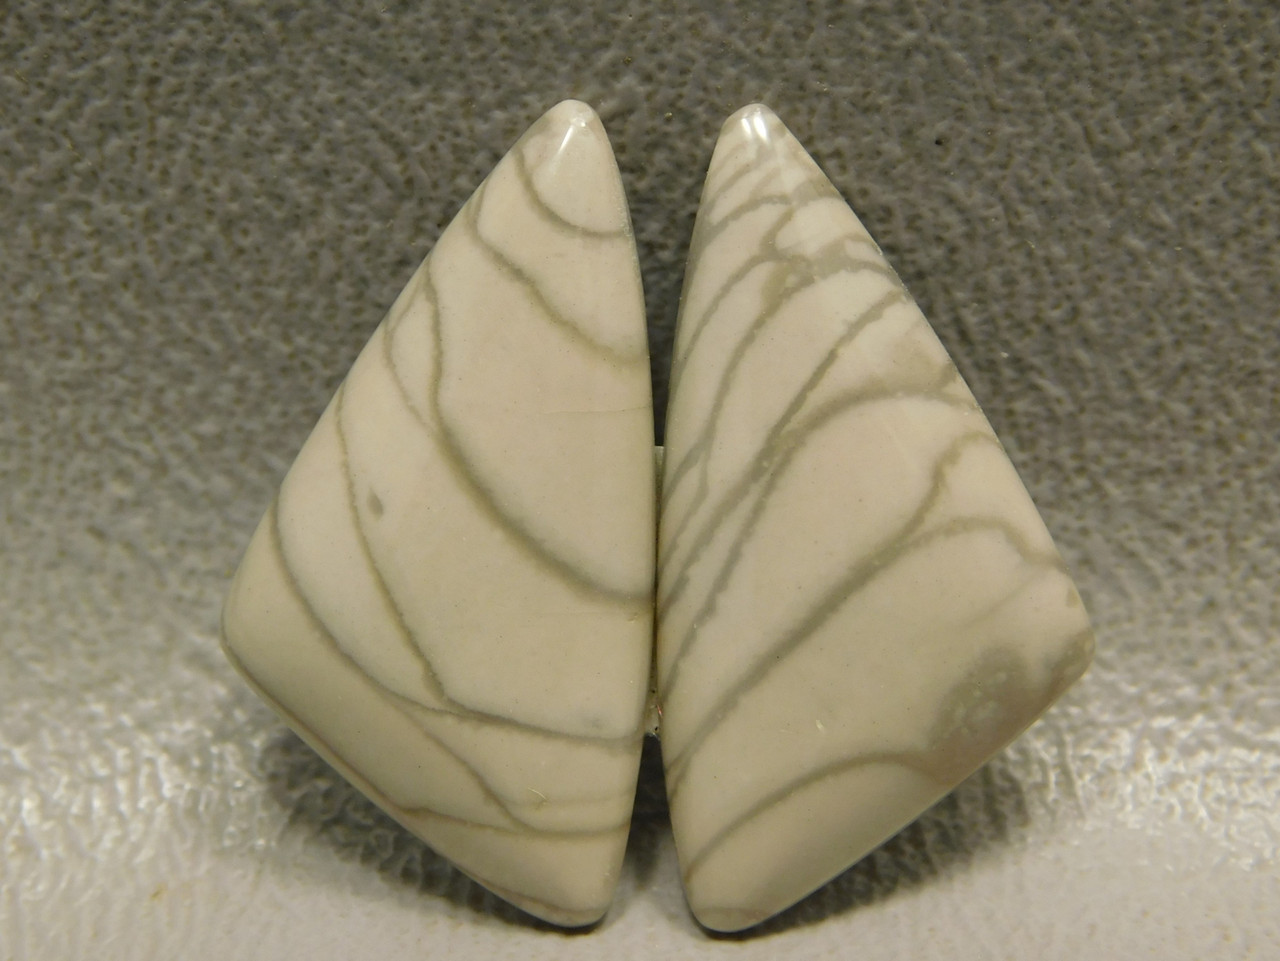 Earring Cabochons Willow Creek Jasper Matched Pair Triangle Stones #10